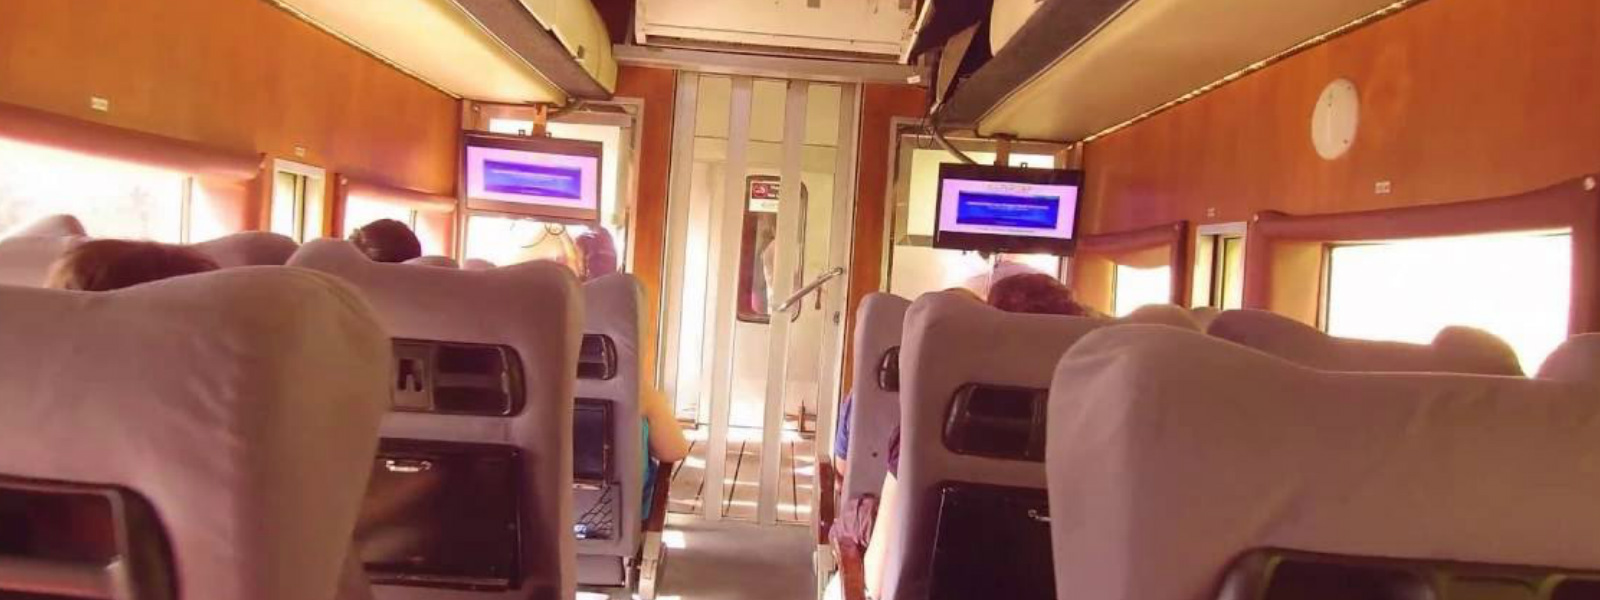 Luxury AC train from Mt. Lavinia to Rambukkana